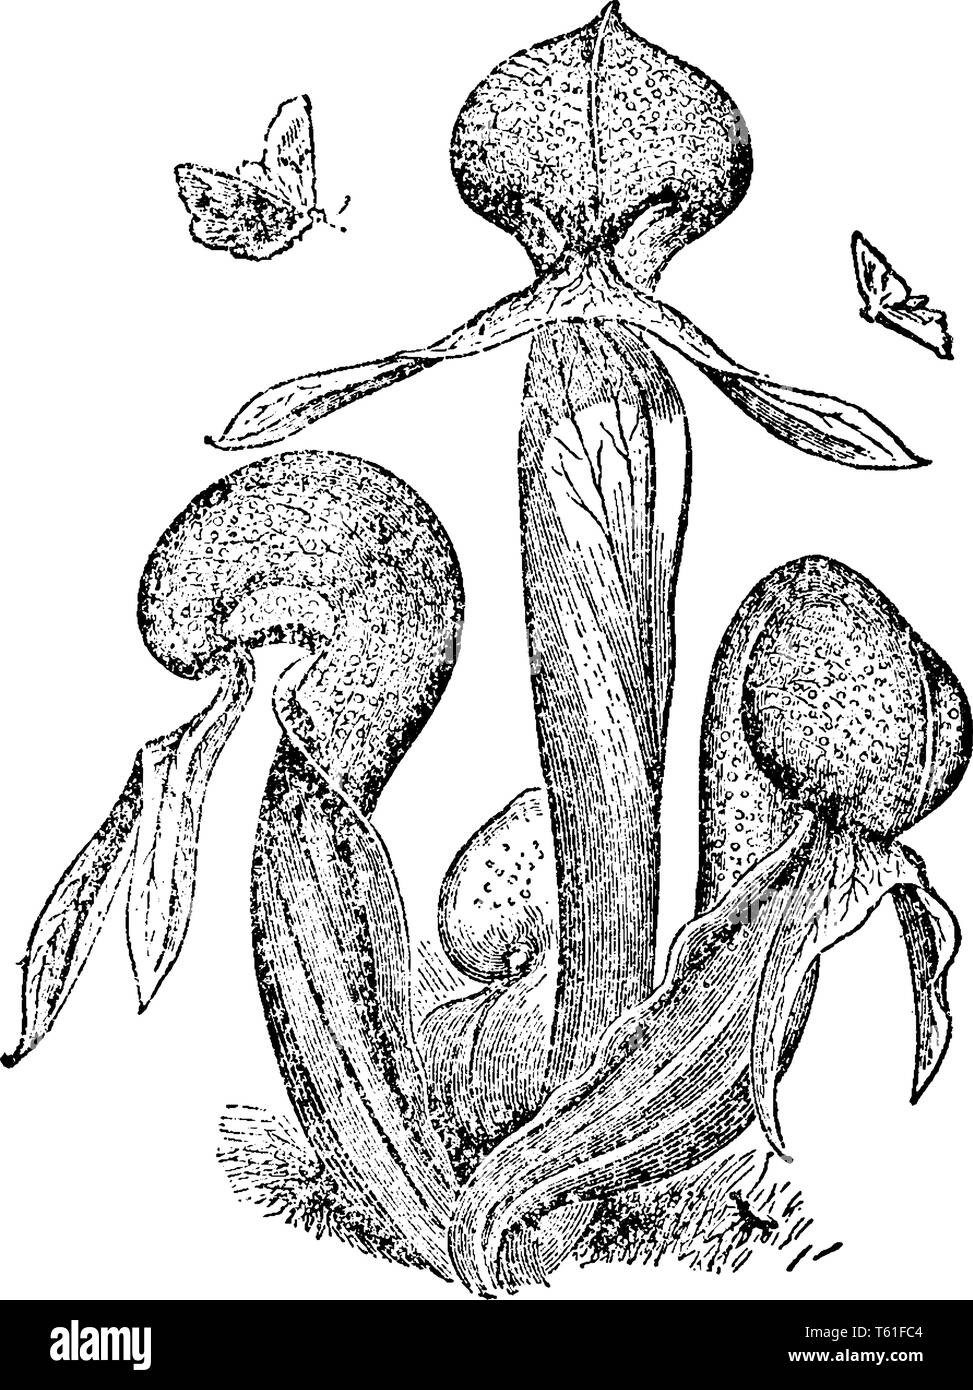 Darlingtonia californica also called the California pitcher plant. They are Himalayan regions growing in bogs and seeps with cold running water, vinta - Stock Vector